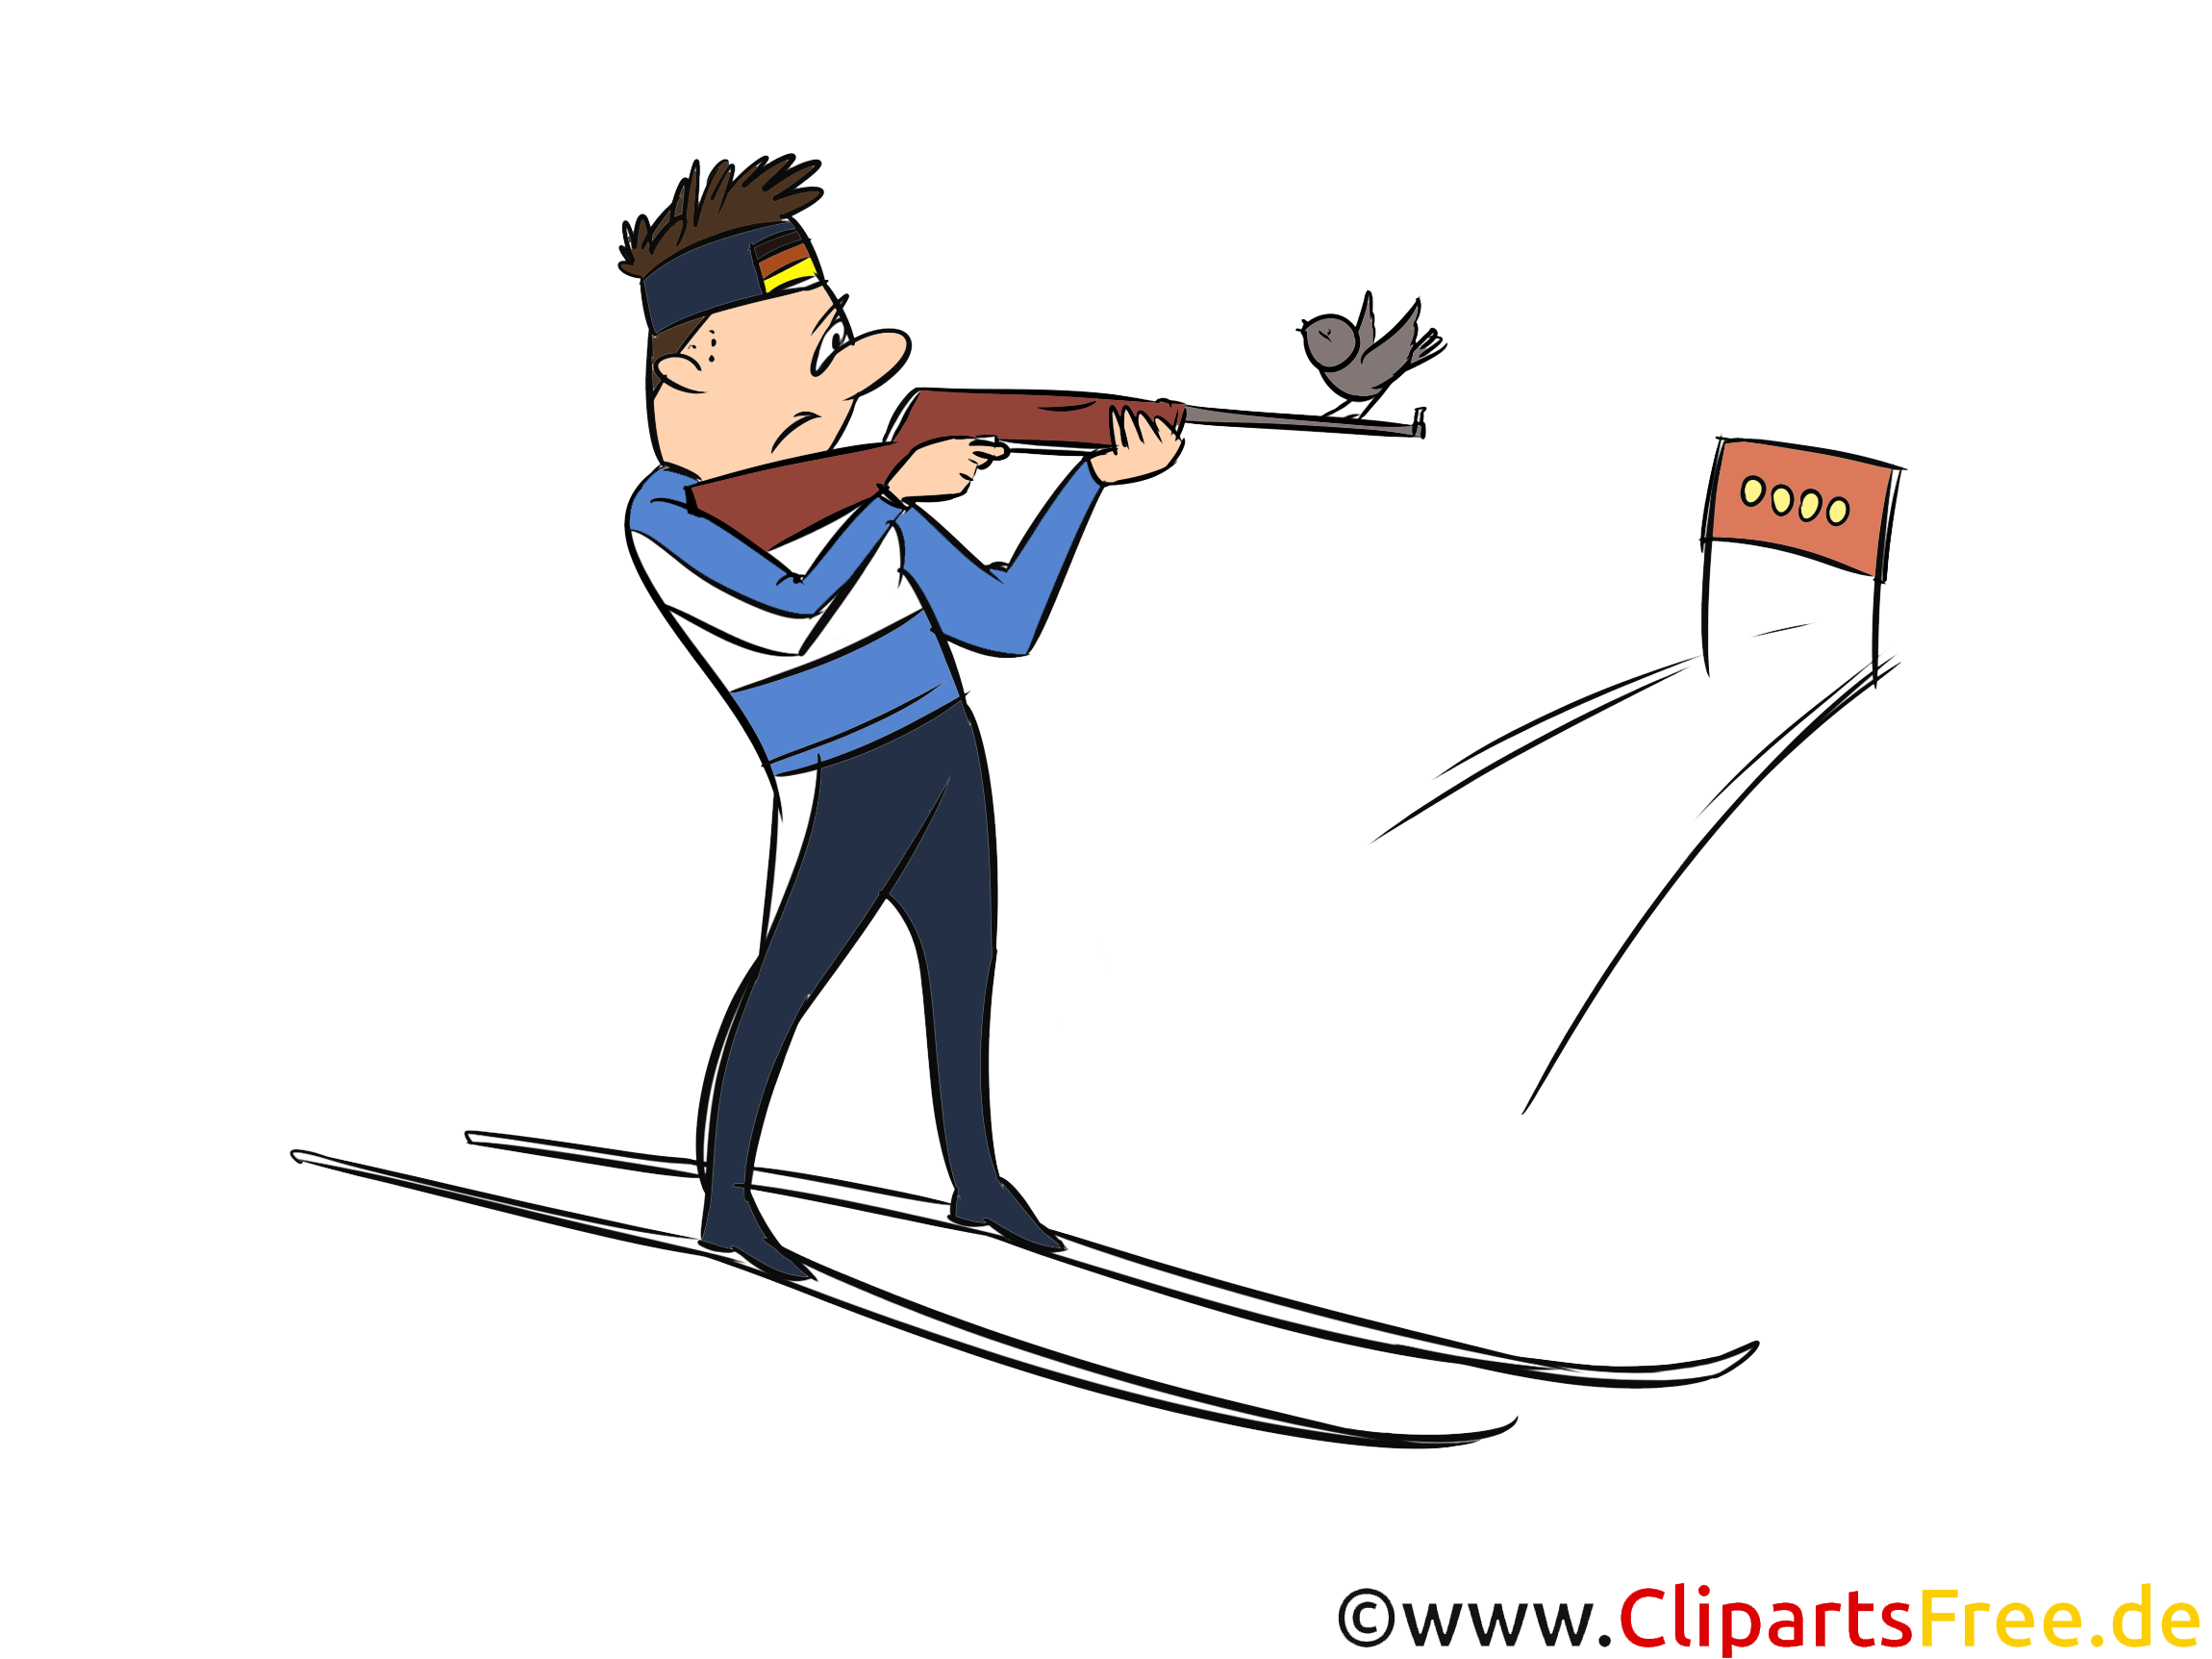 Biathlon Clipart, Bild, Illustration - Wintersportarten Bilder